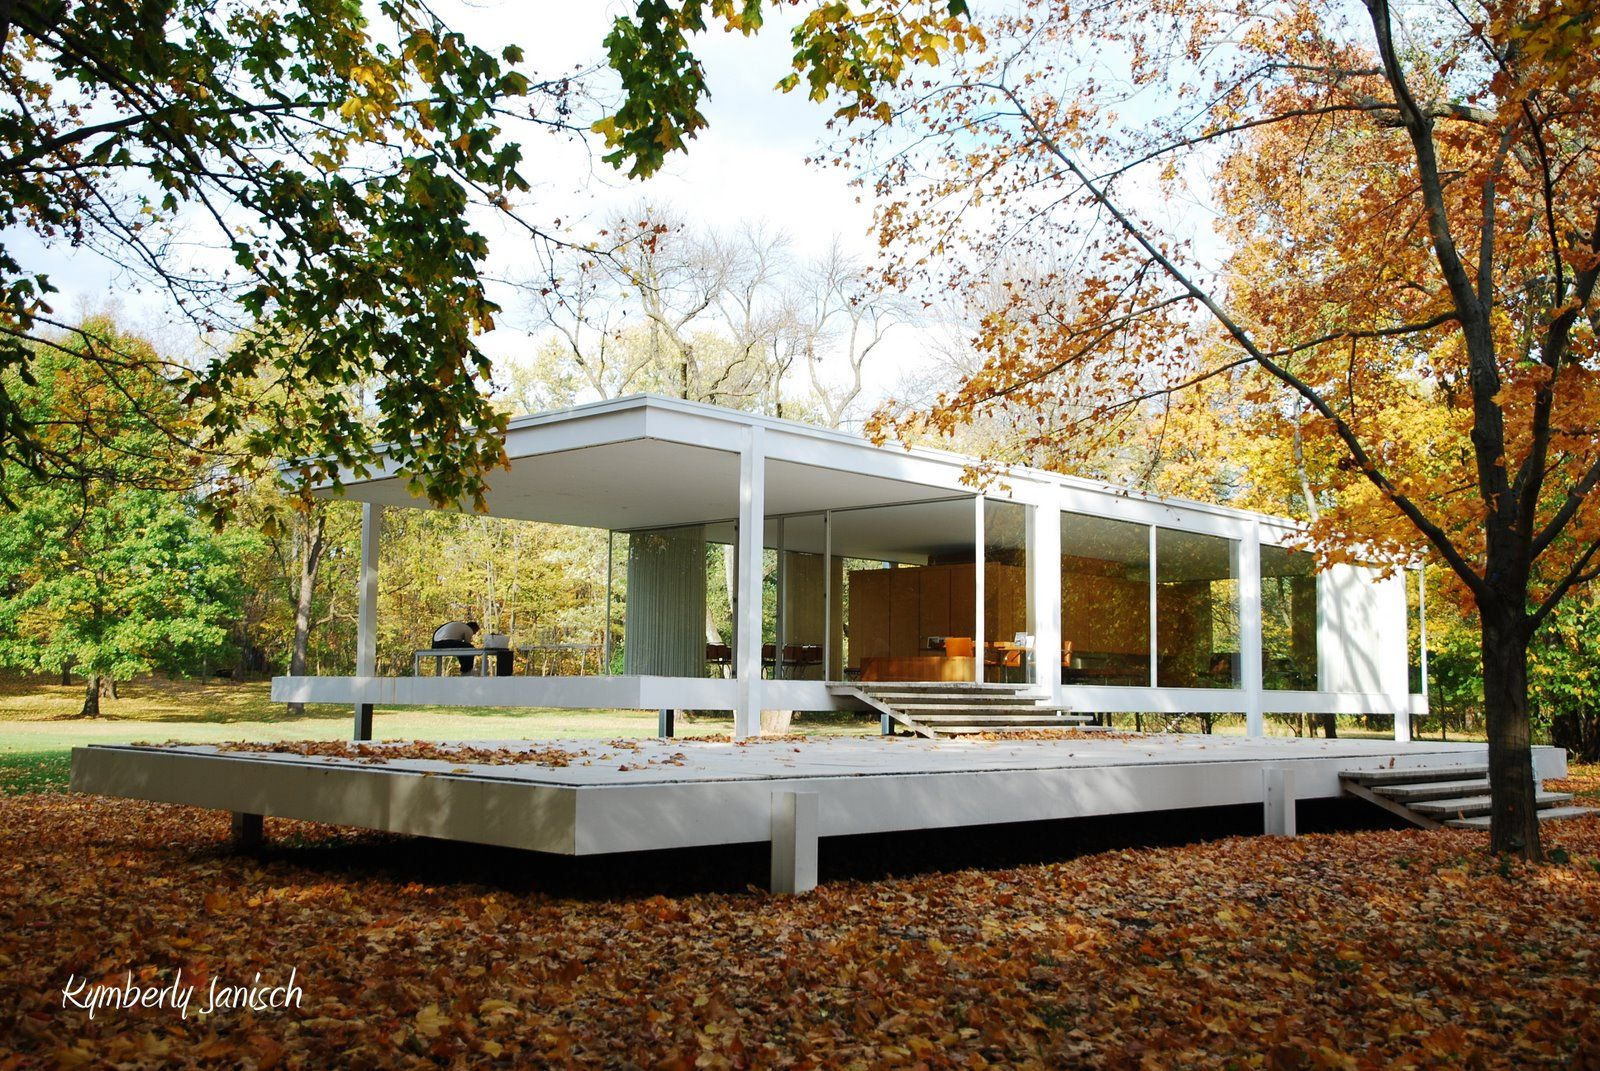 Farnsworth House Mies Van Der Rohe Plano Illinois 1951